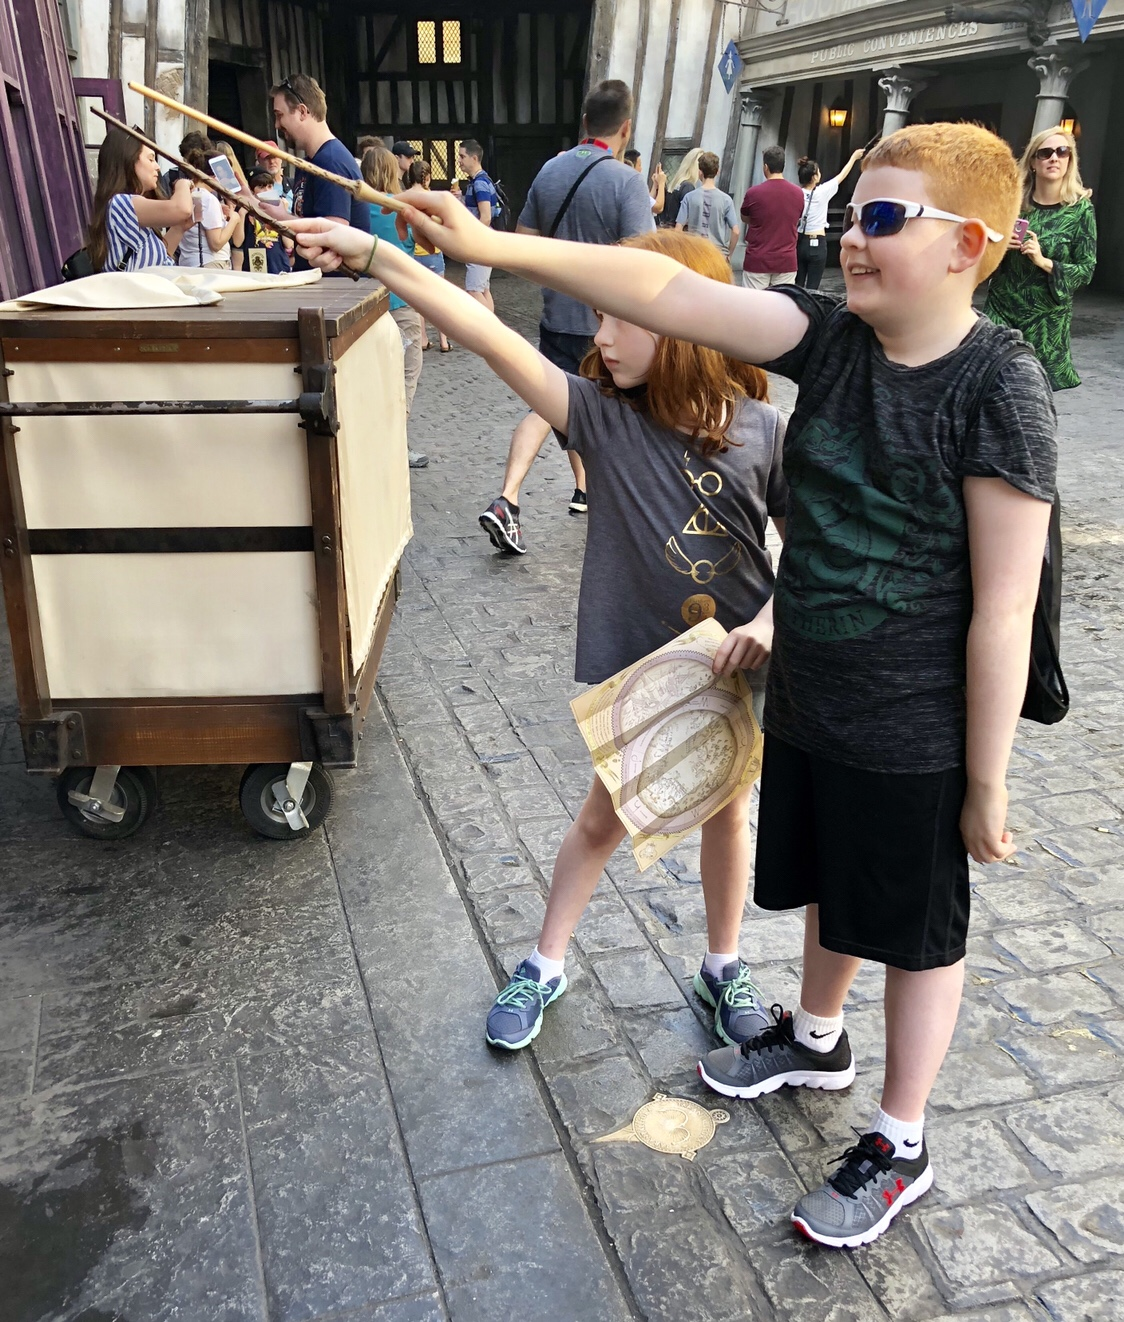 Casting Spells in Diagon Alley #interactivewand #harrypotter #diagonalley #ollivanders #universalorlando